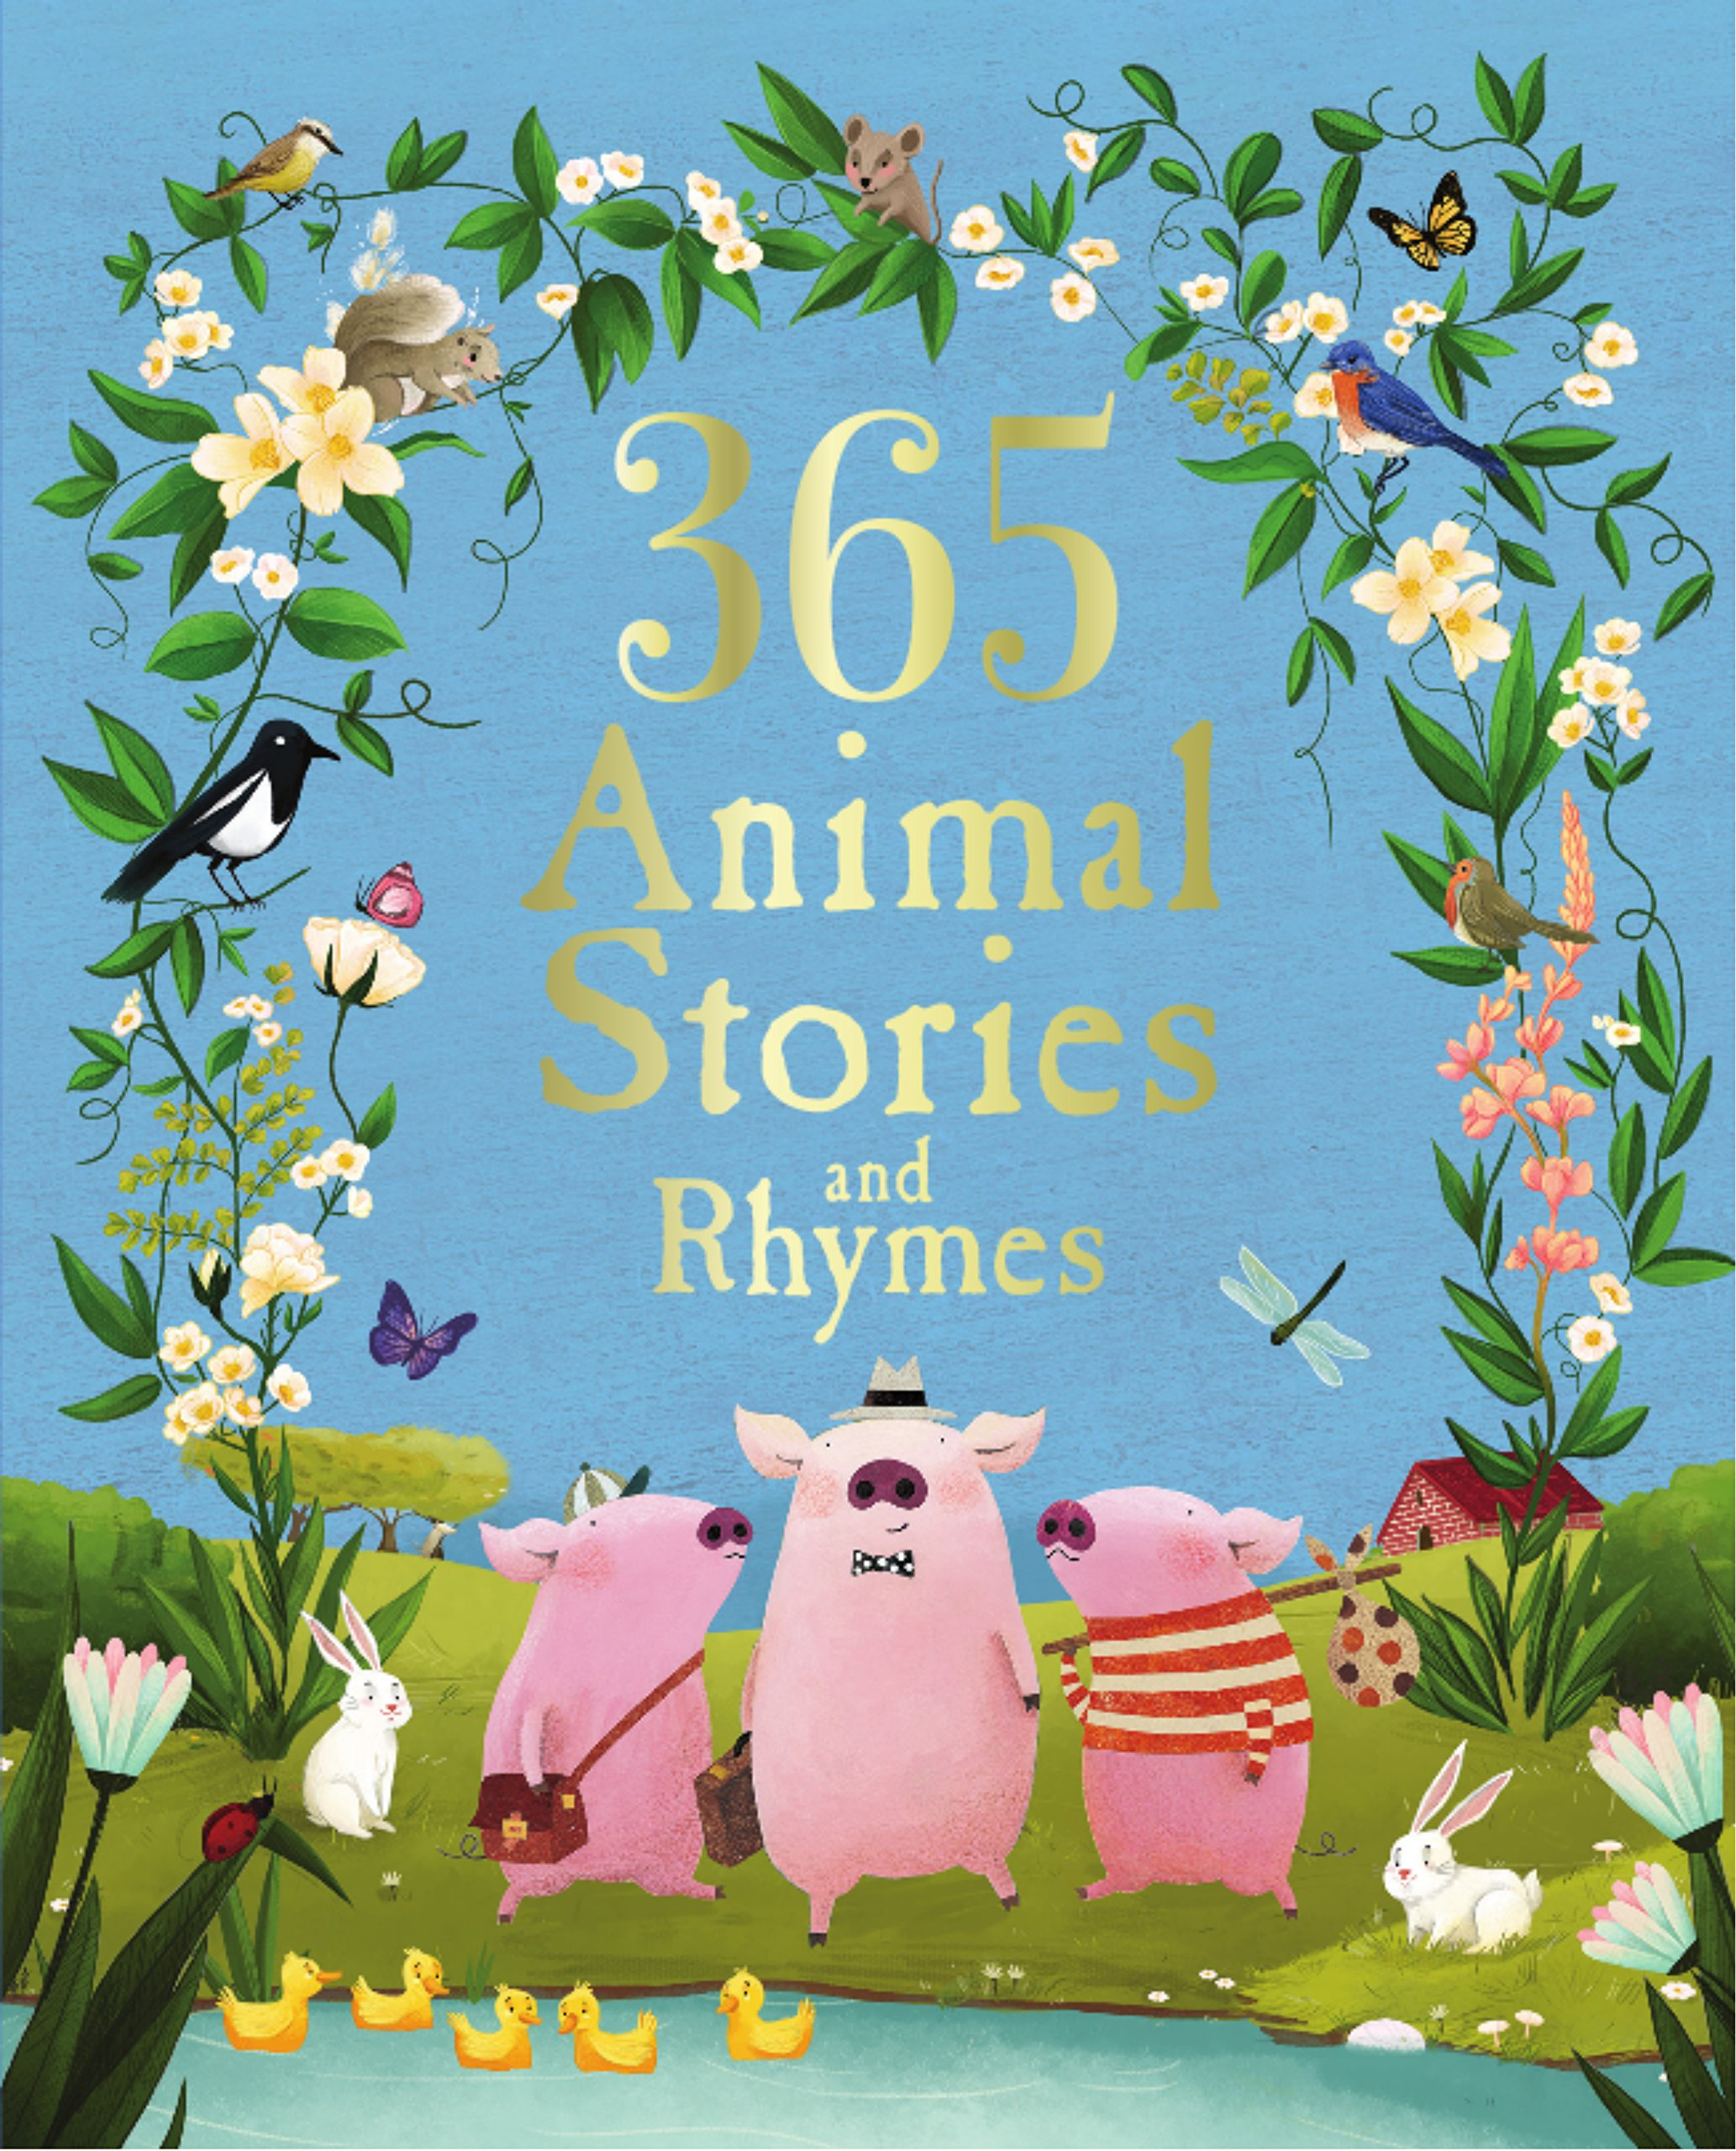 Download 365 Animal Stories and Rhymes Treasury (Deluxe Edition) ebook